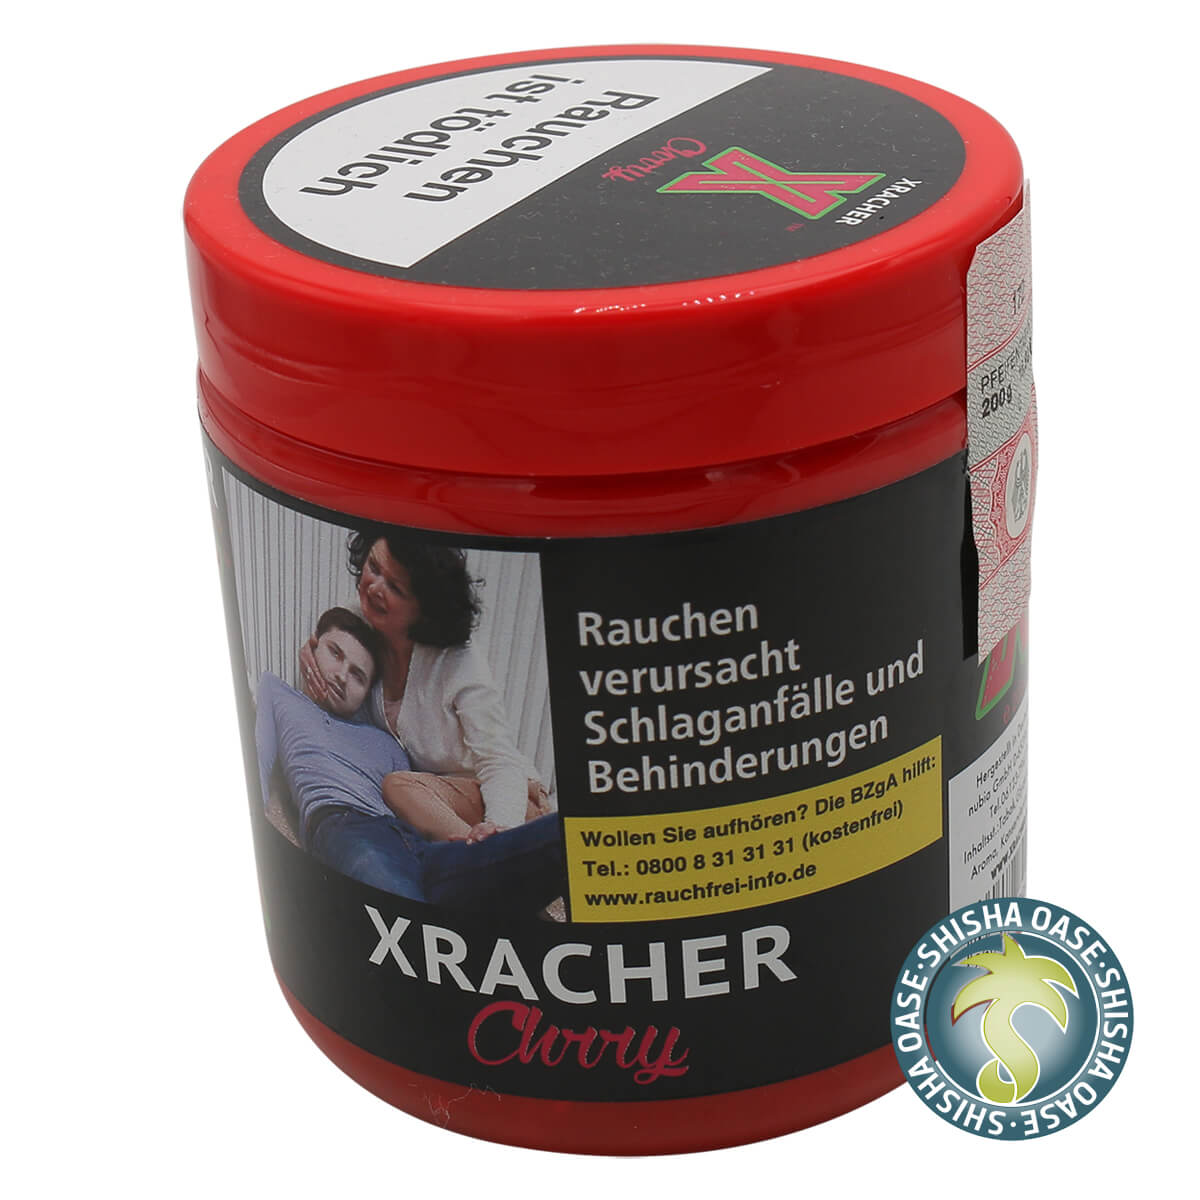 XRacher Tobacco - Chrry 200g